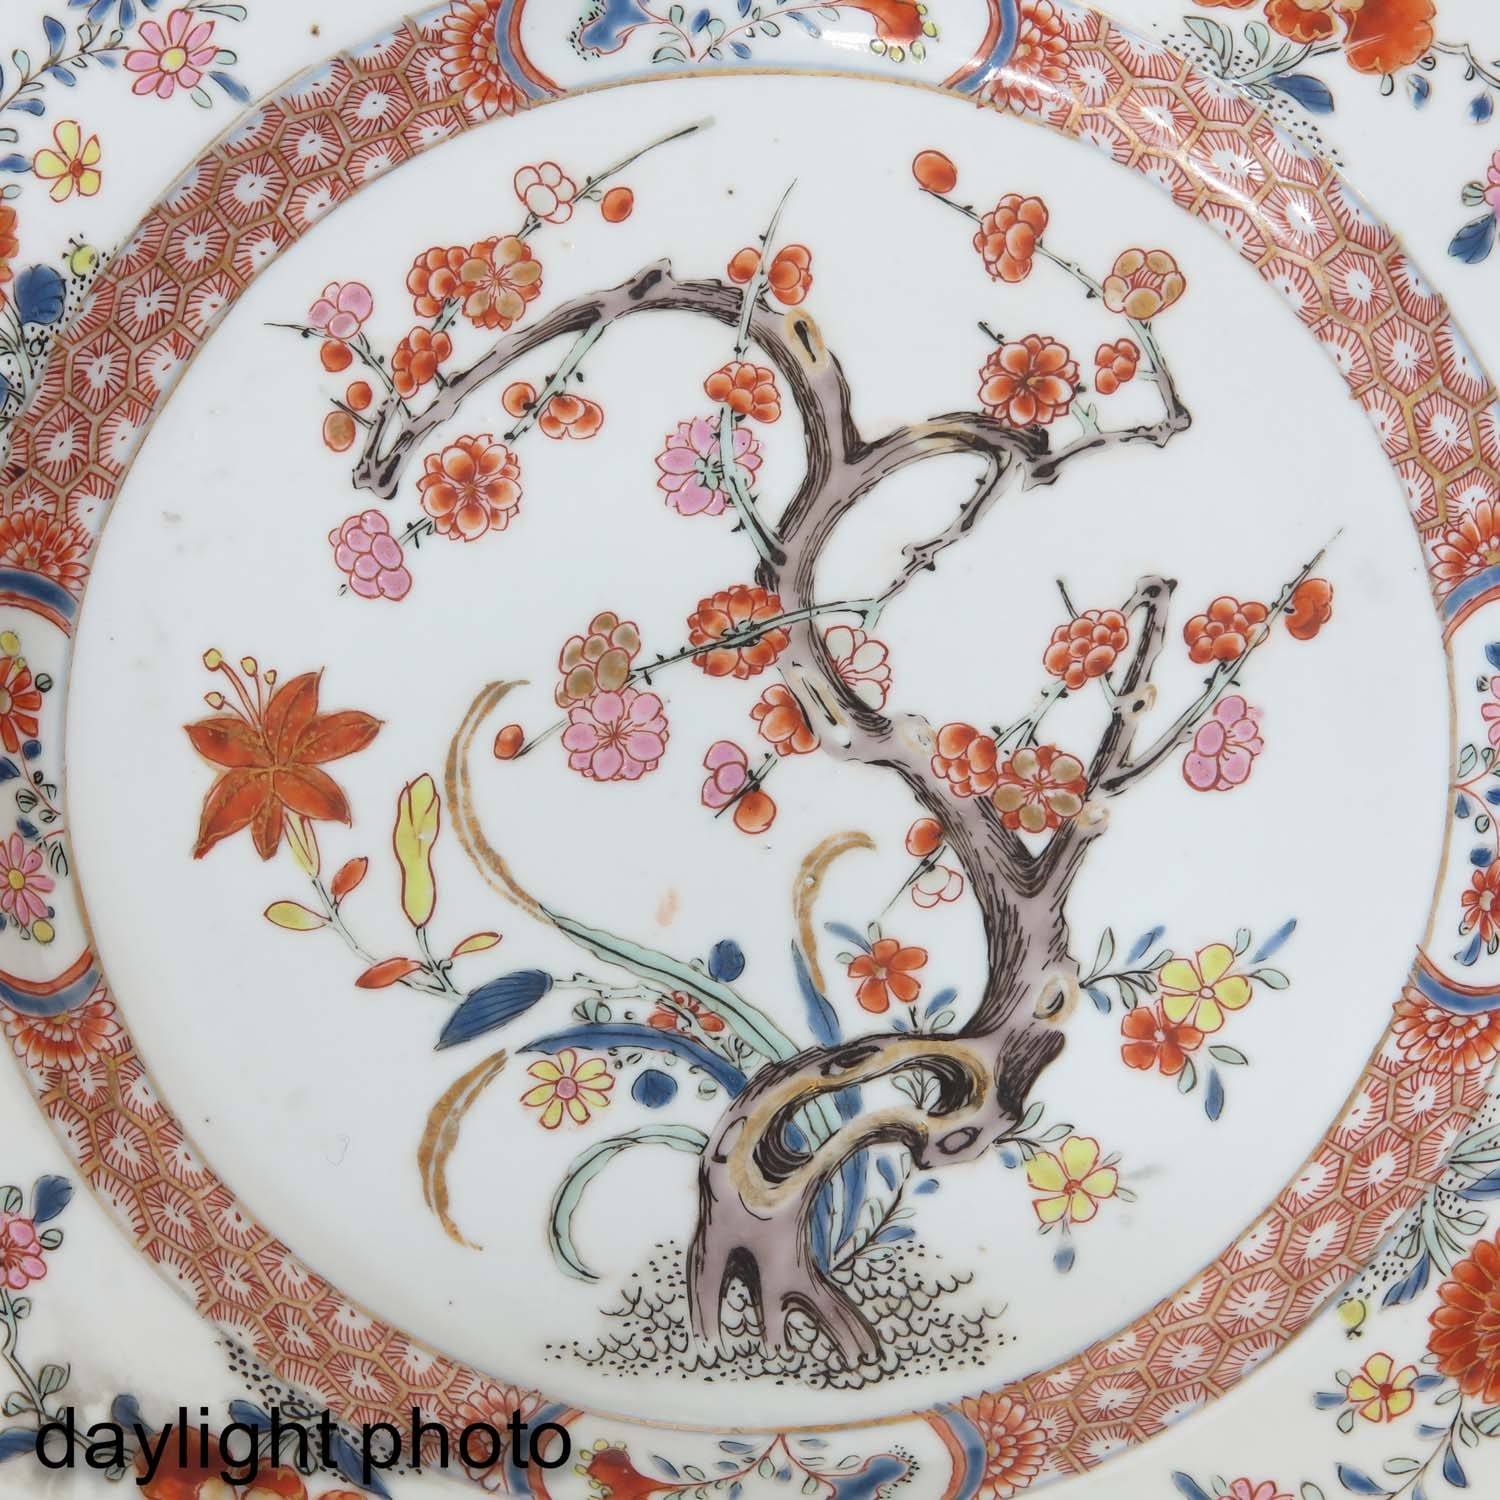 A Collection of 6 Polychrome Decor Plates - Image 9 of 9